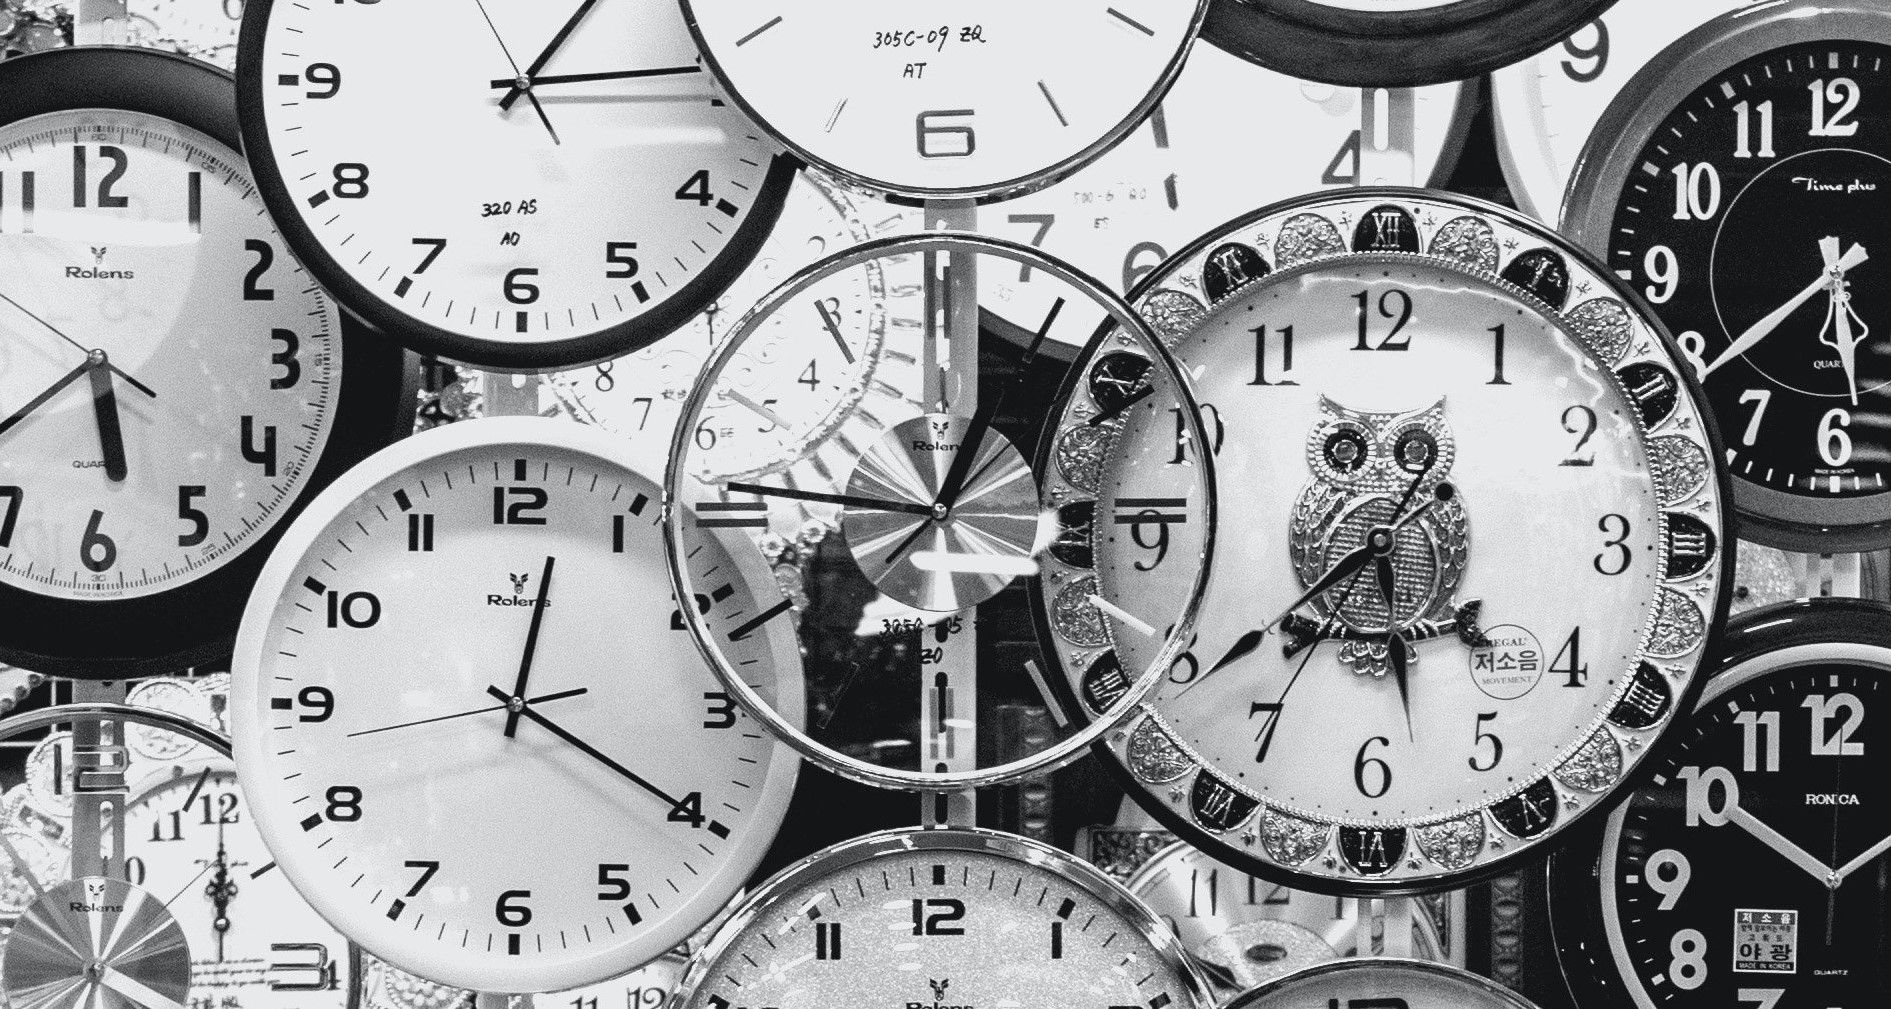 Many black and white clocks